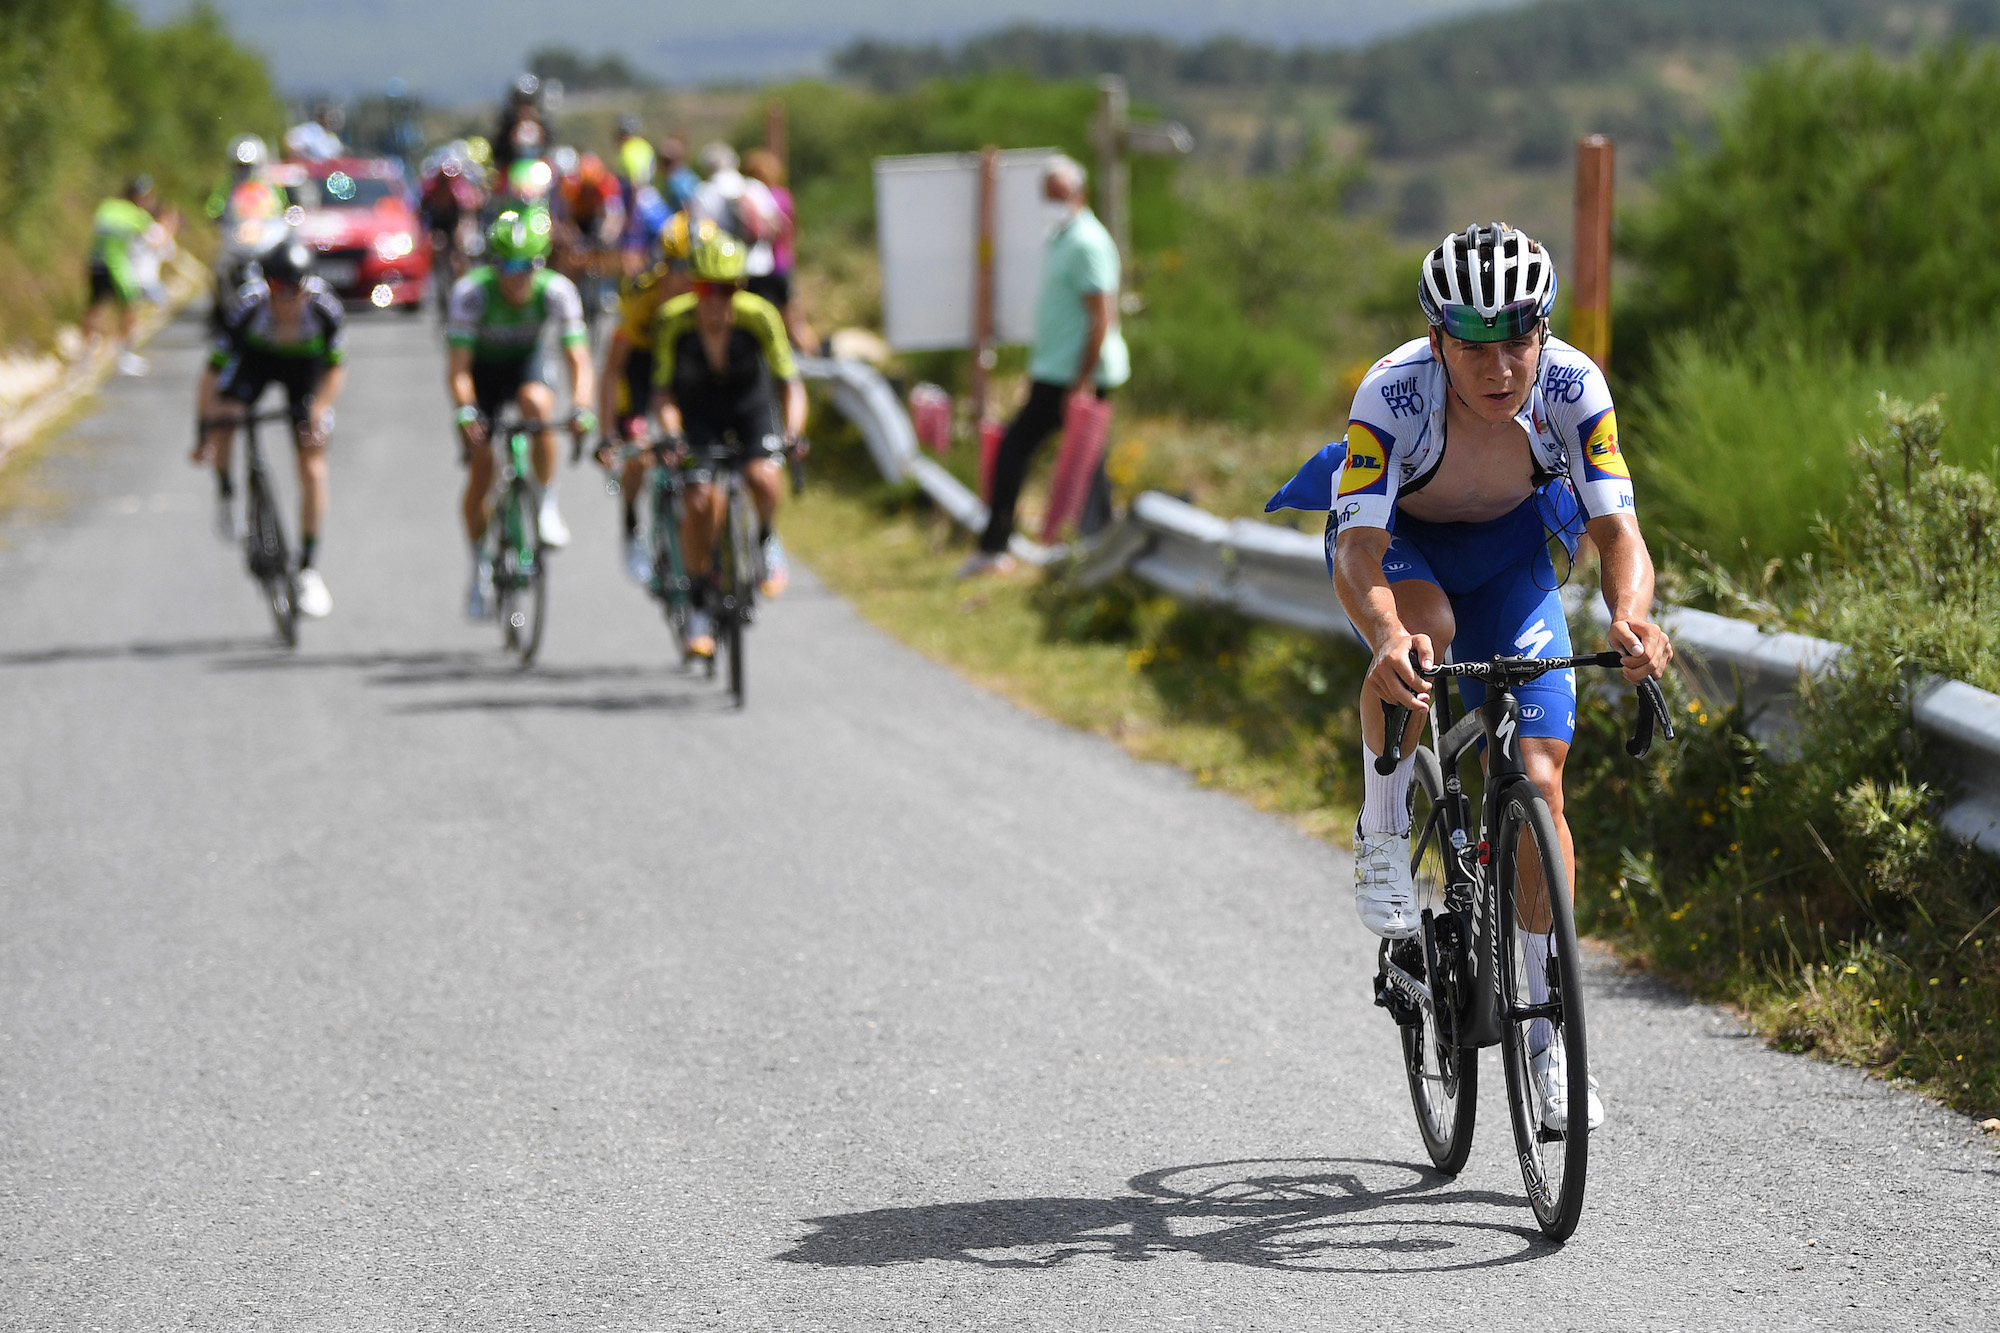 Watch: Riders battle insane winds on summit of Picón Blanco at Vuelta a Burgos - Cycling Weekly